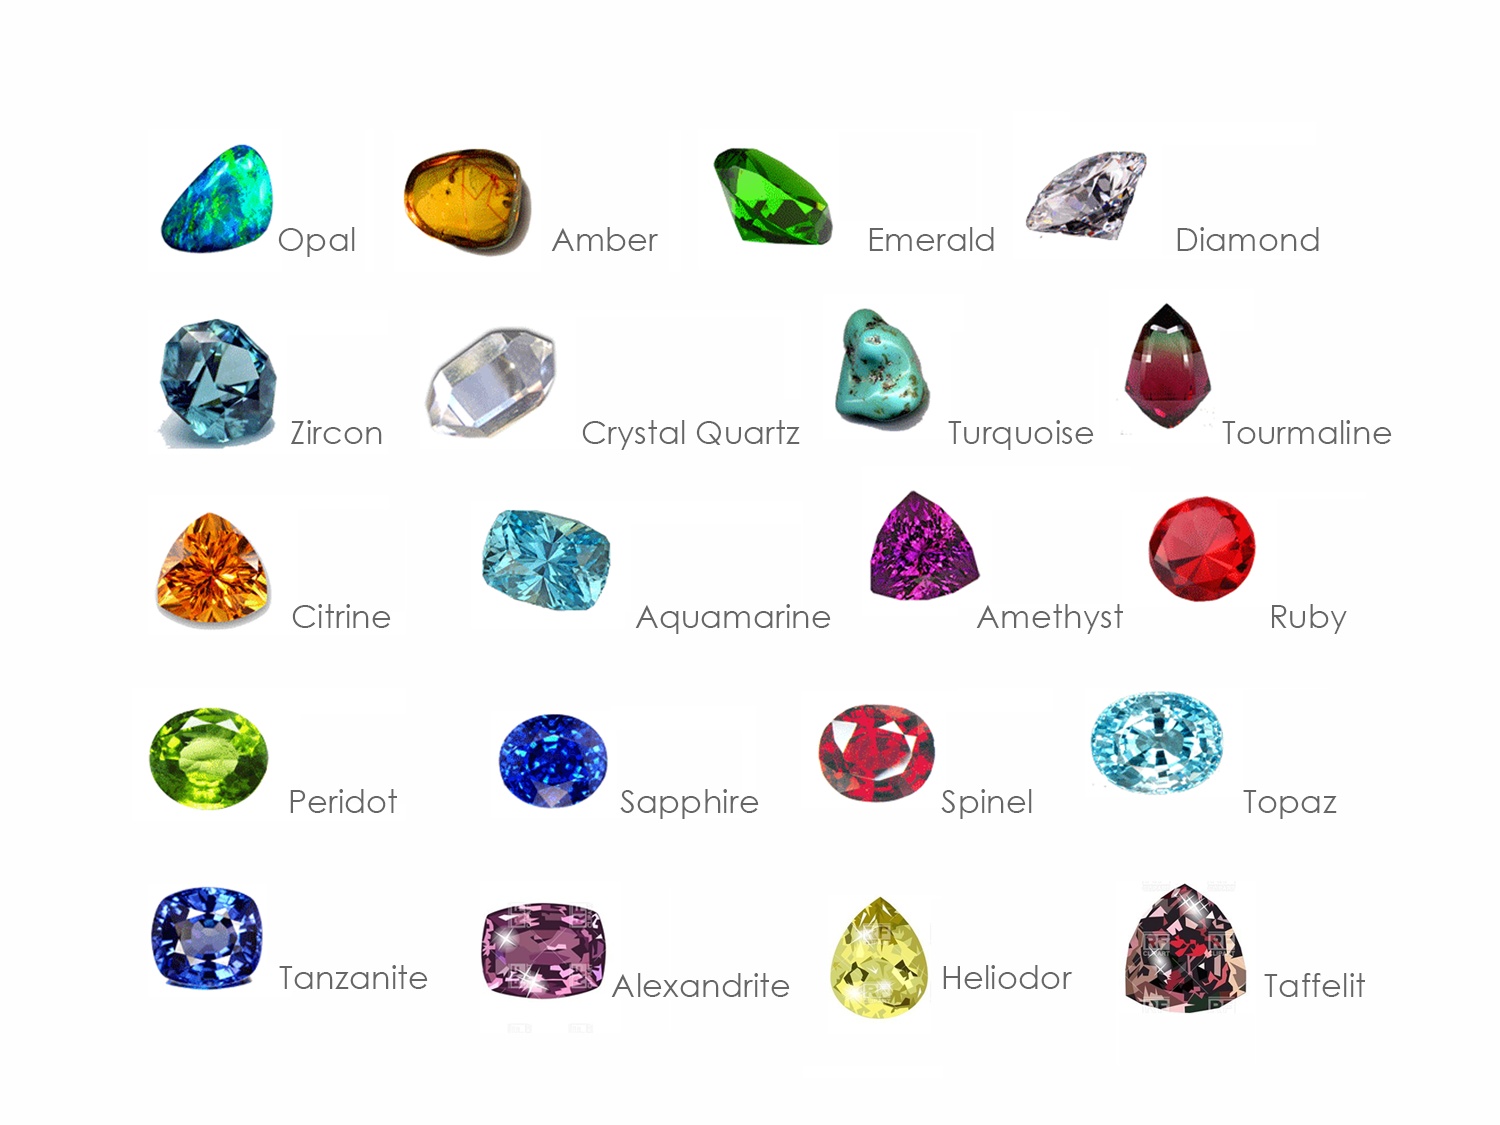 Types Of Stones : Types of precious stones gemstones imitation and